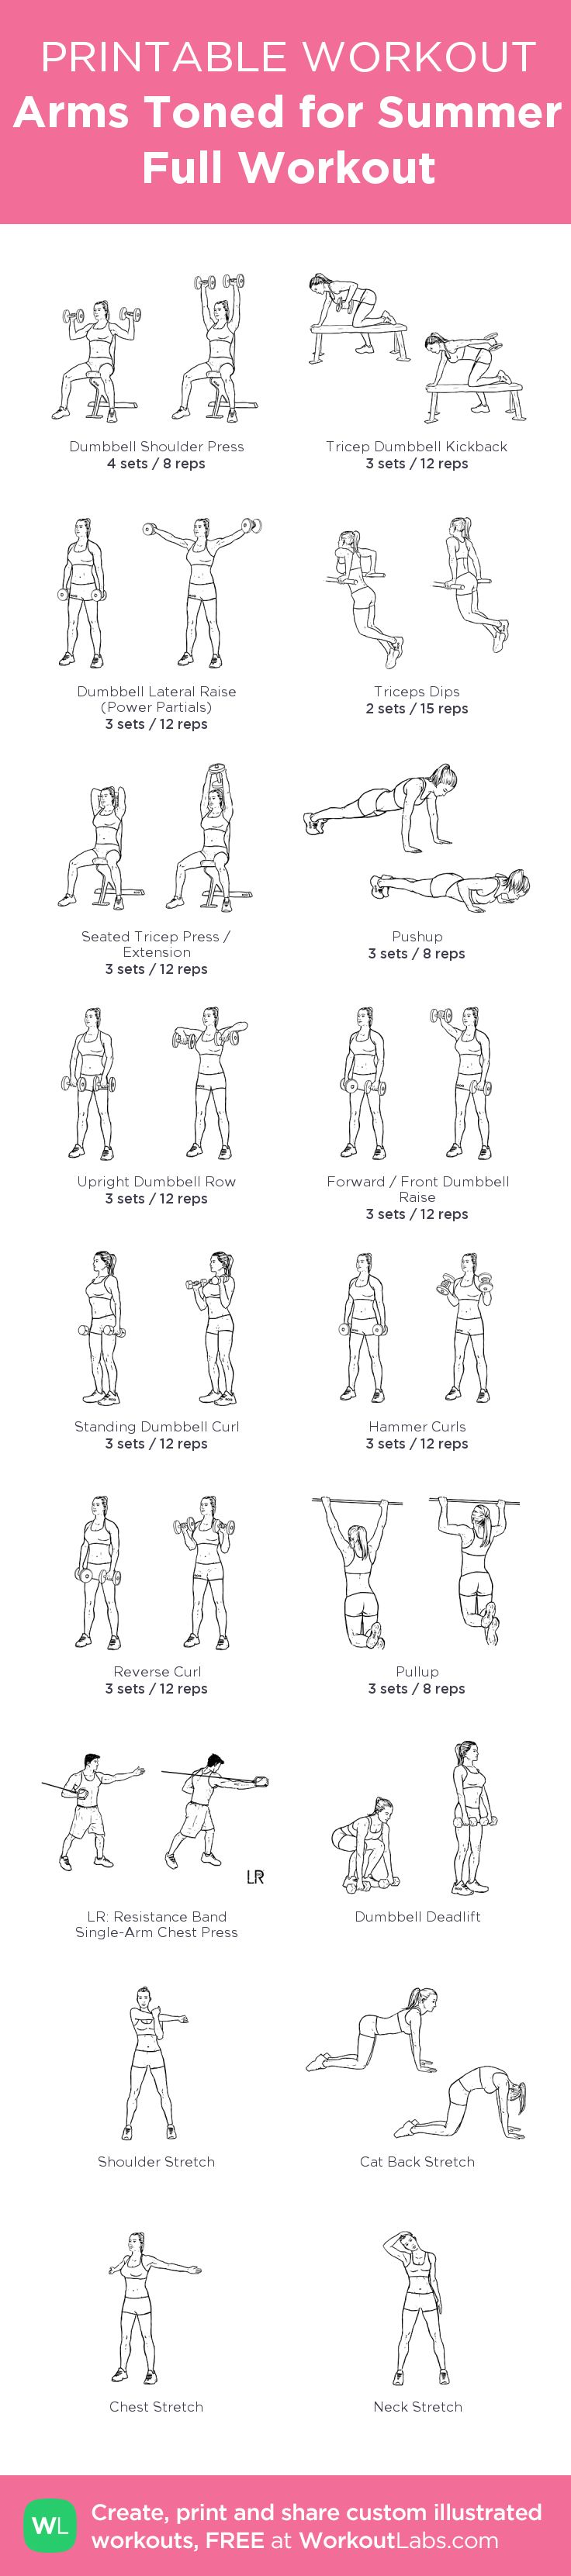 With 6 Triceps shoulders workouts, followed by 6 Biceps Back workouts, this makes a full upper body workout routines, at home or at the Gym ! my custom printable workout by @WorkoutLabs #workoutlabs #customworkout